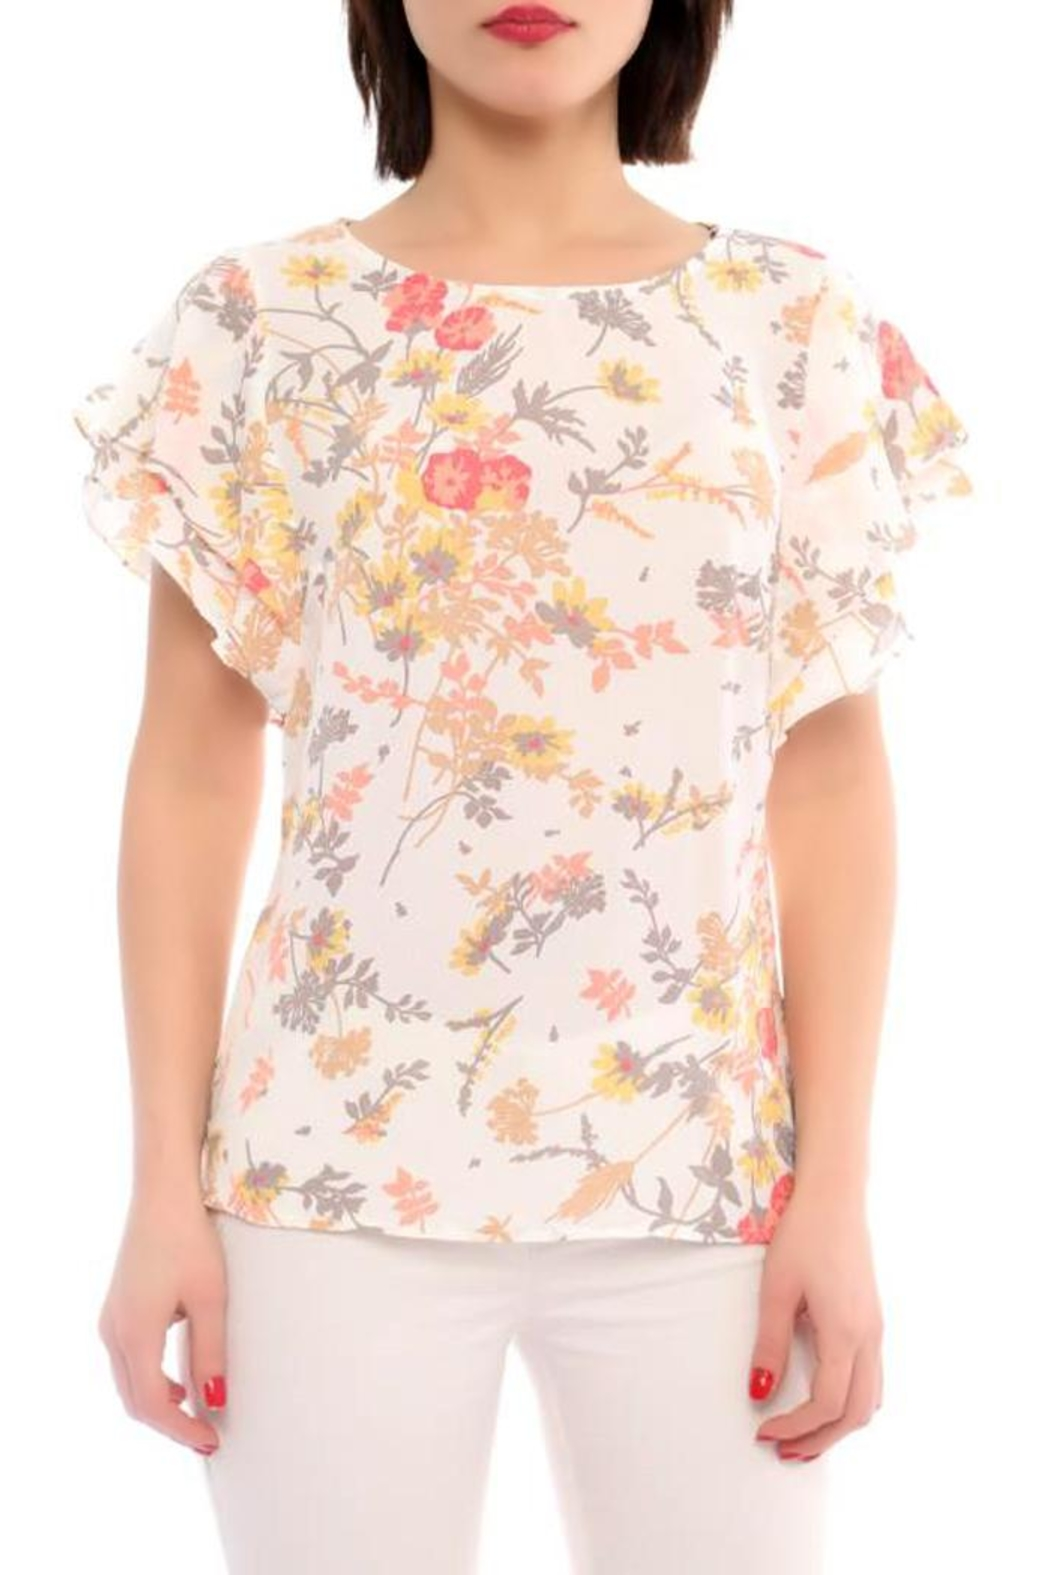 Marvy Fashion Flower Print Top - Main Image